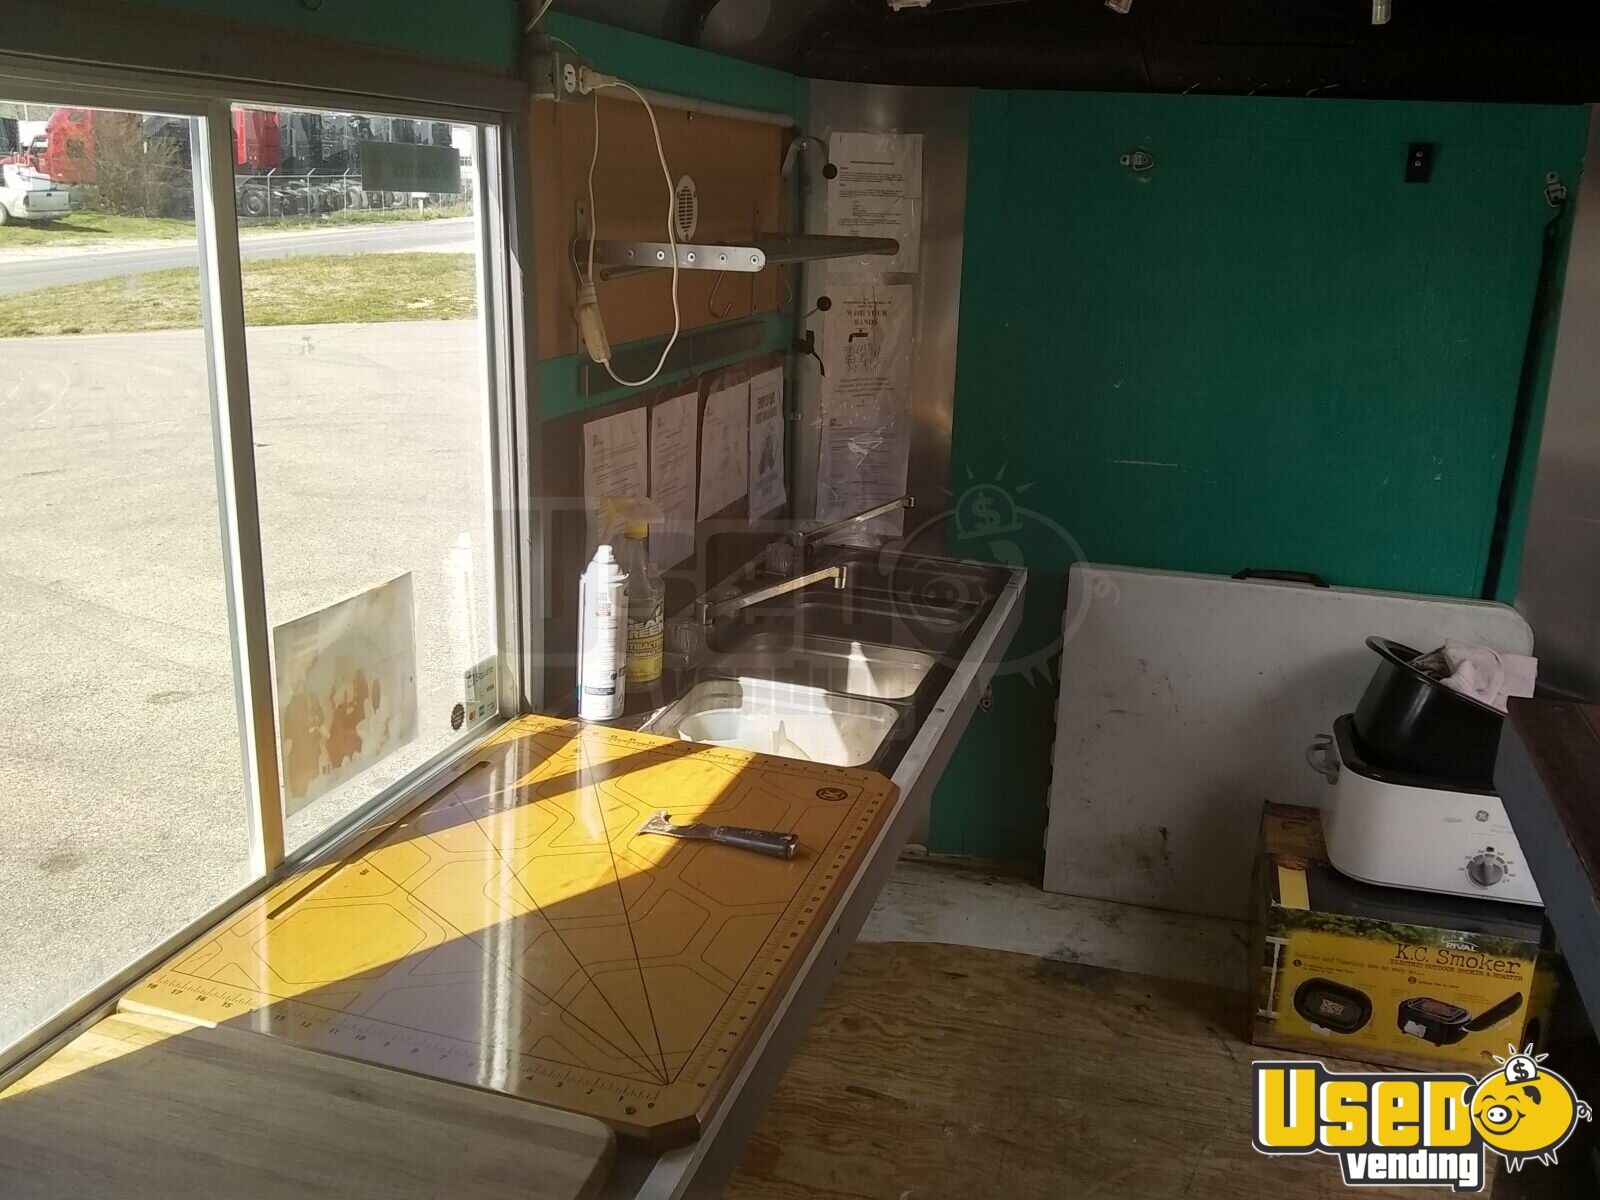 2018 Concession Trailer Hand-washing Sink Tennessee for Sale - 10